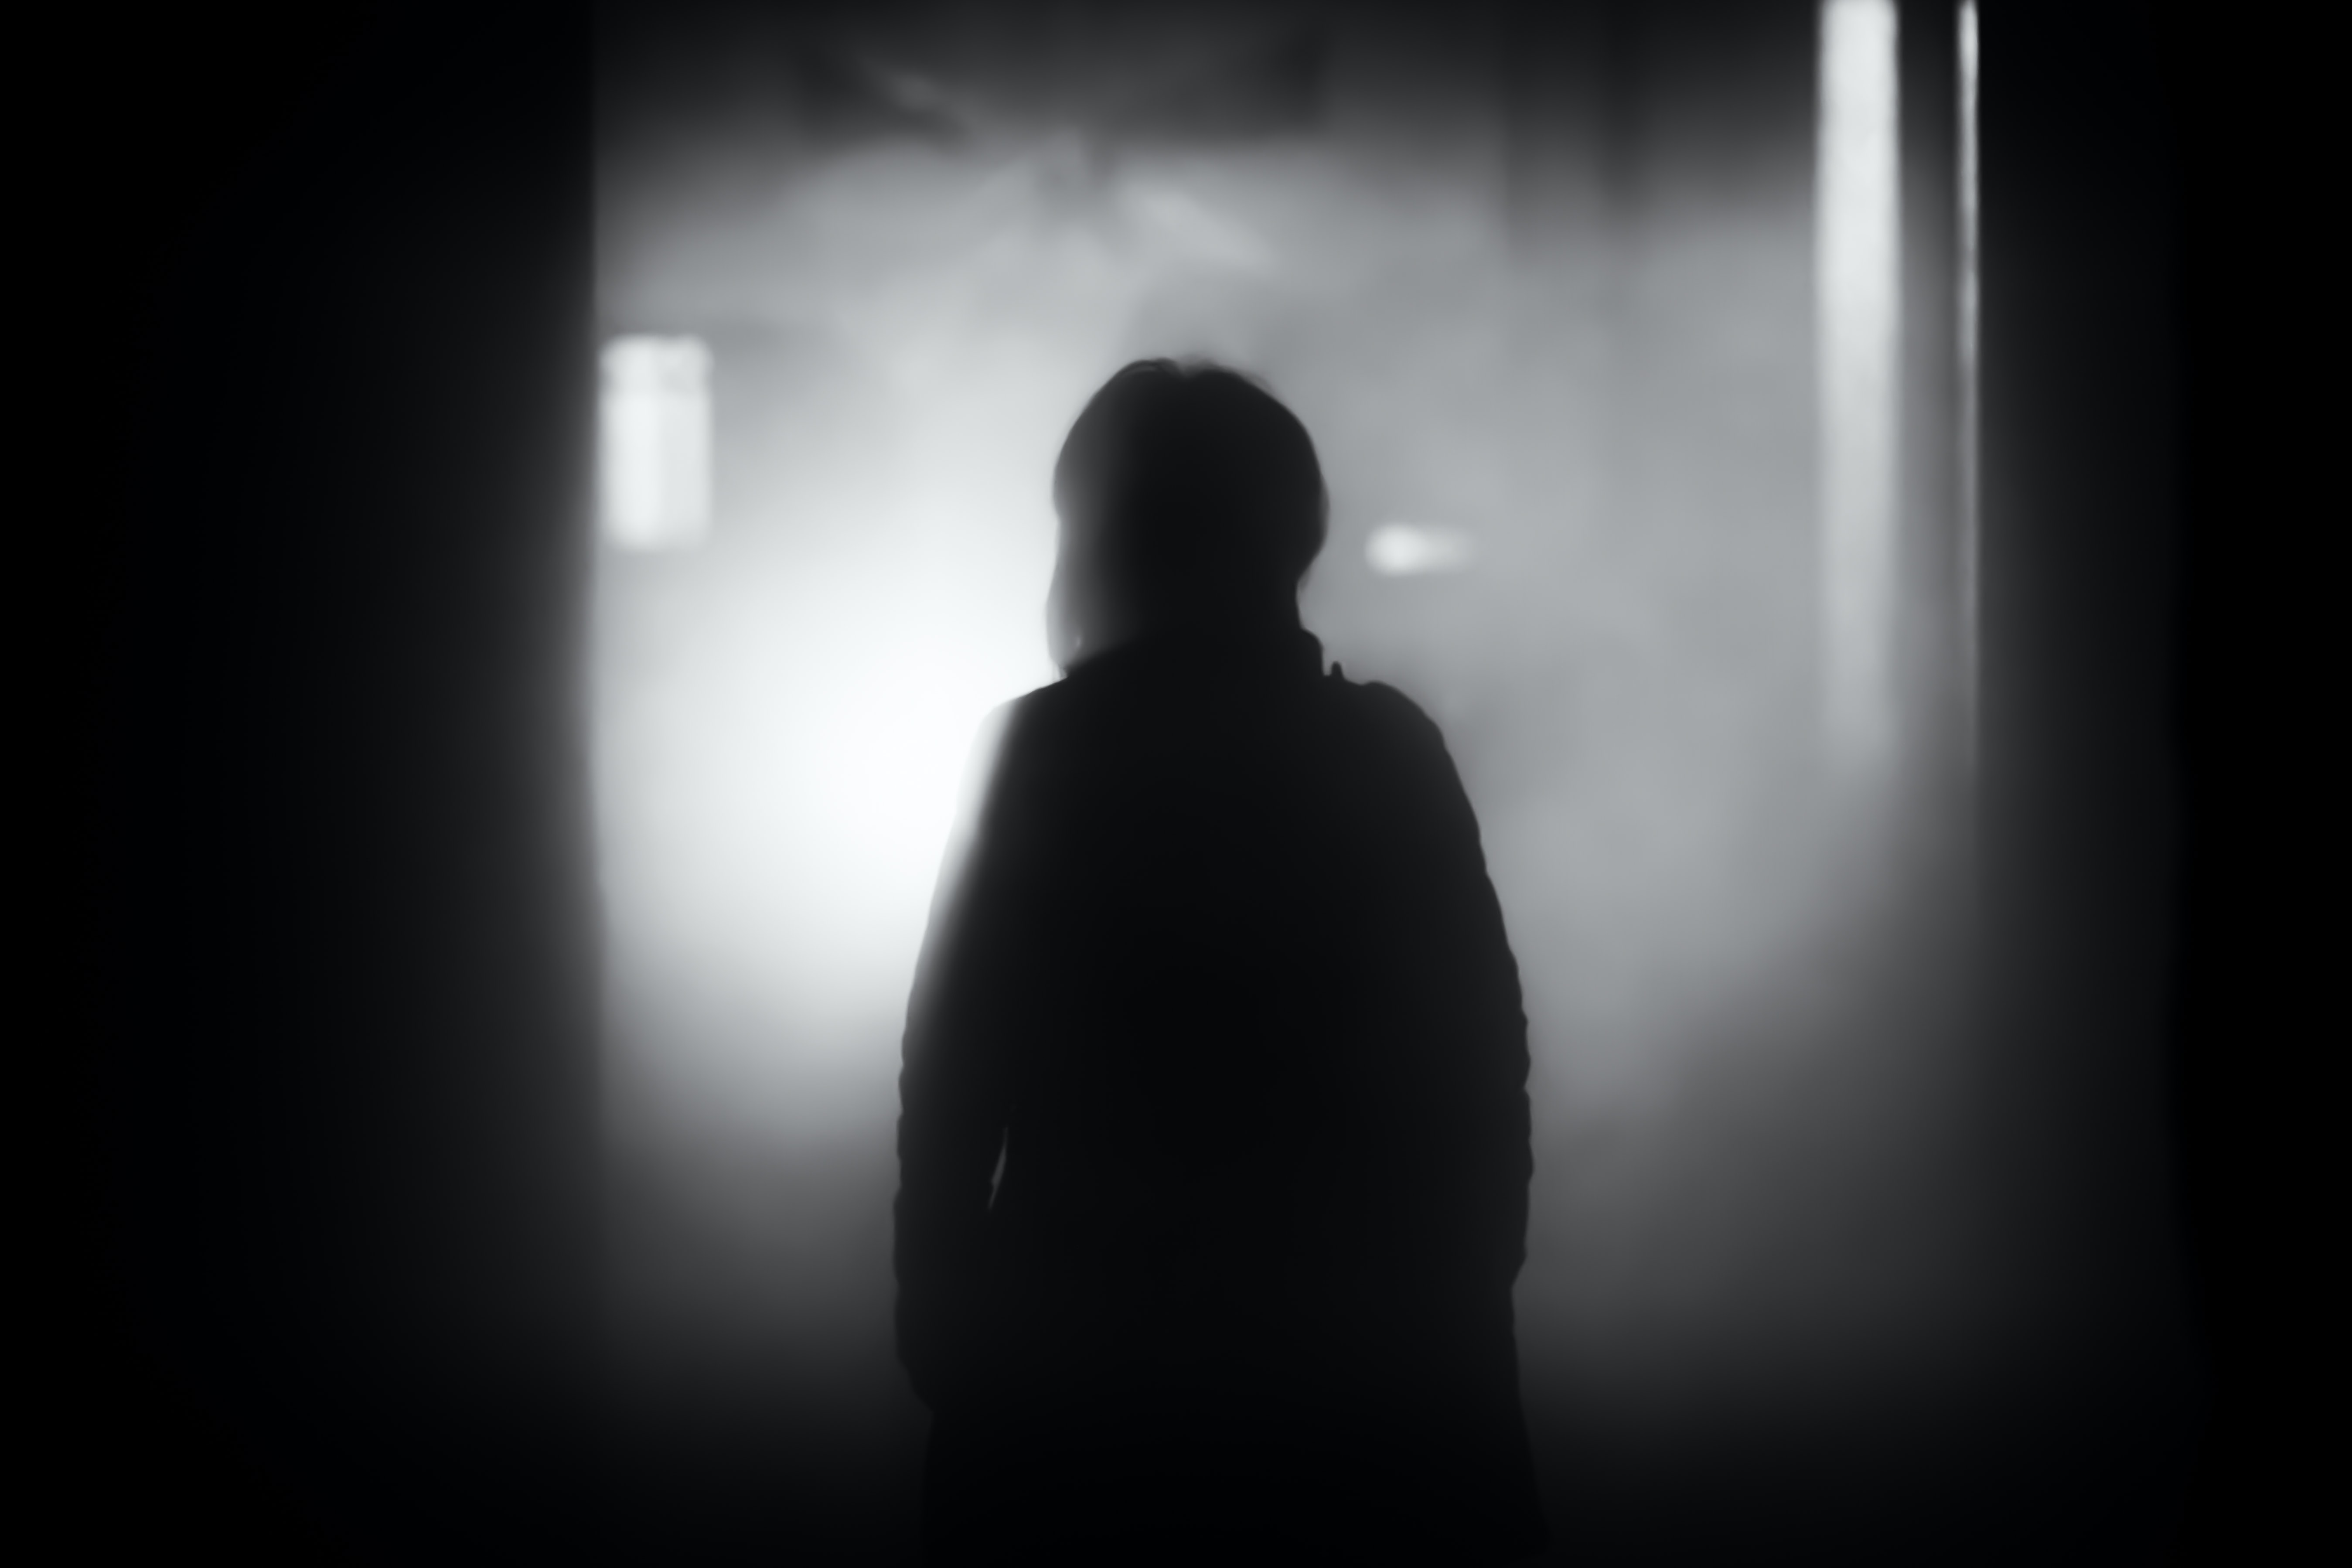 silhouette photo of person standing on door frame